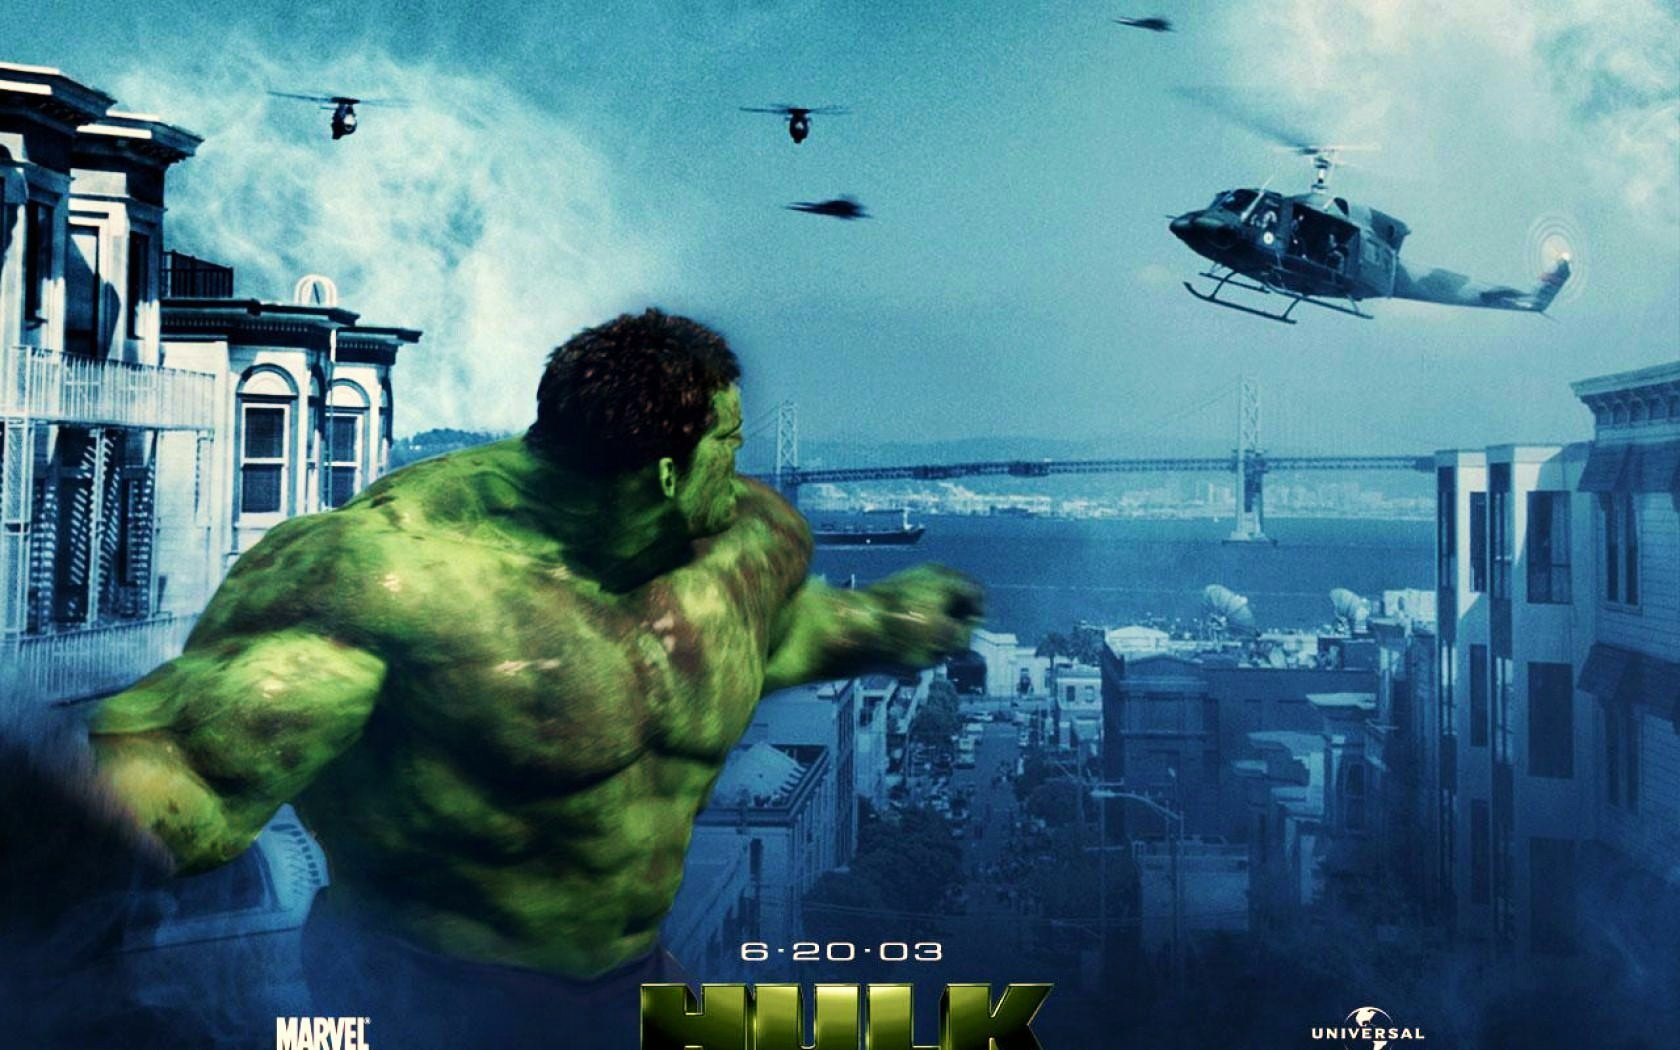 The Hulk Wallpaper - The Incredible Hulk Wallpaper (31051342